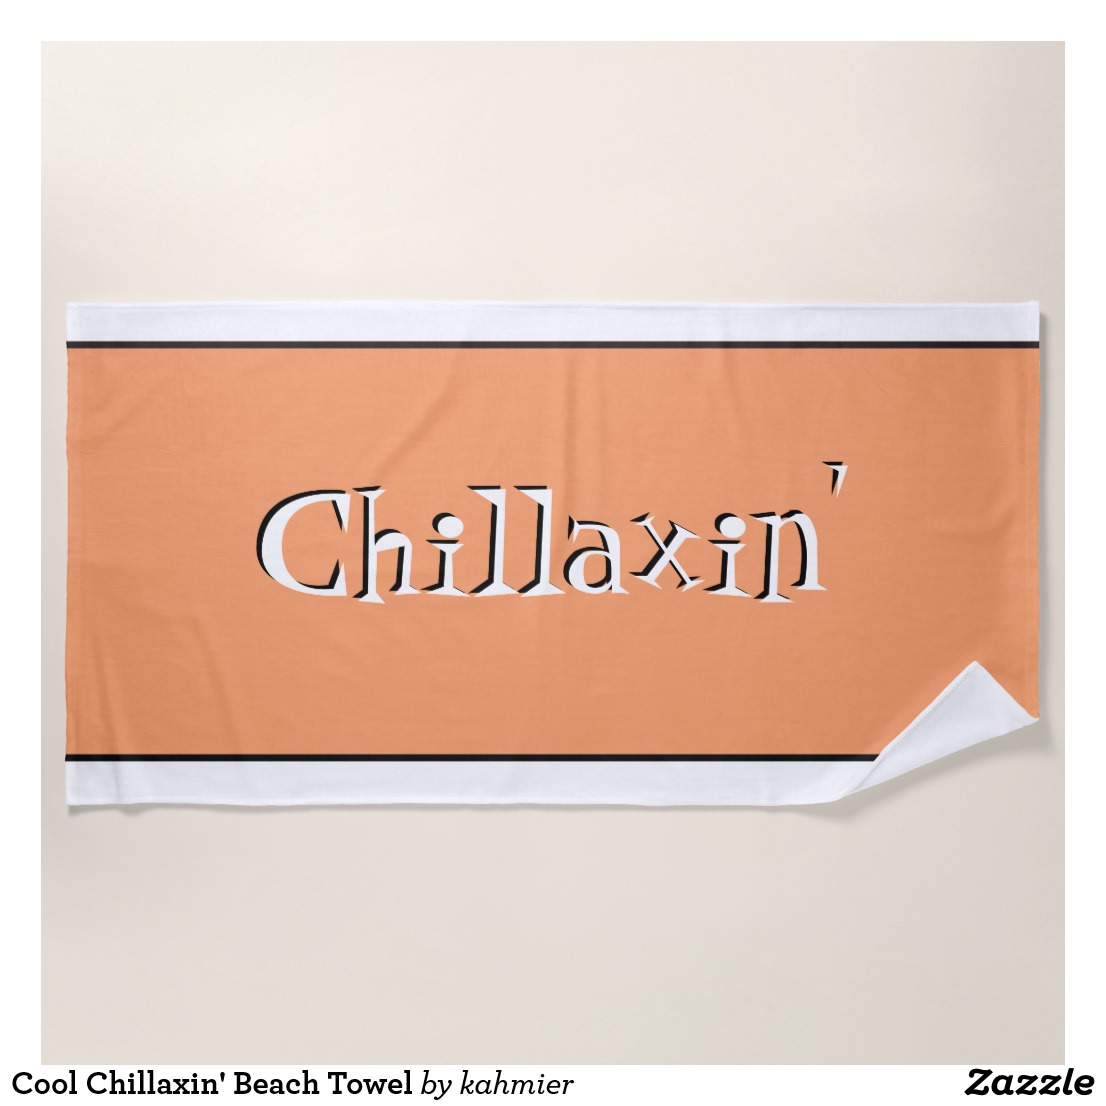 Cool Chillaxin' Beach Towel